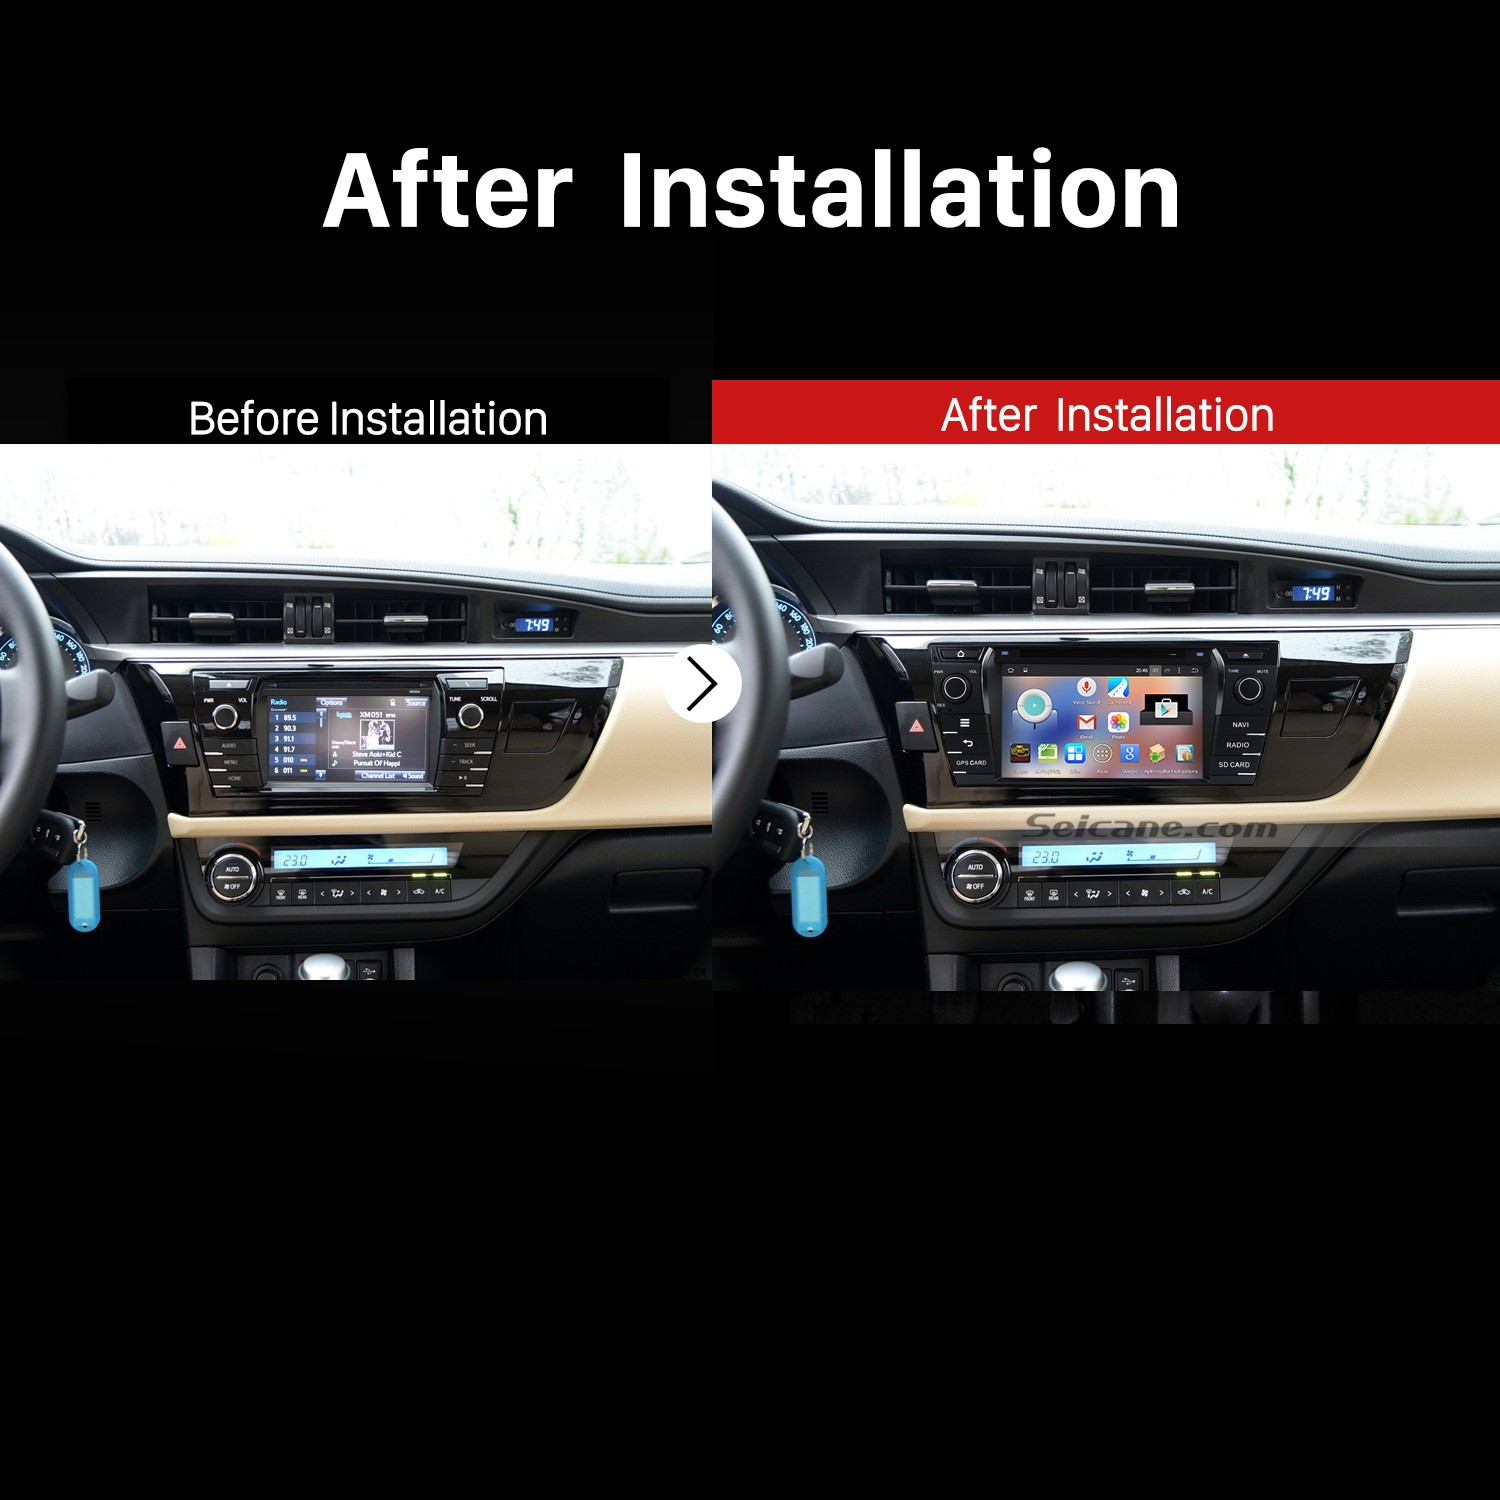 how to upgrade a 2013 2014 toyota corolla stereo sound system with touch screen radio speakers toyota corolla speaker upgrade toyota corolla radio upgrade